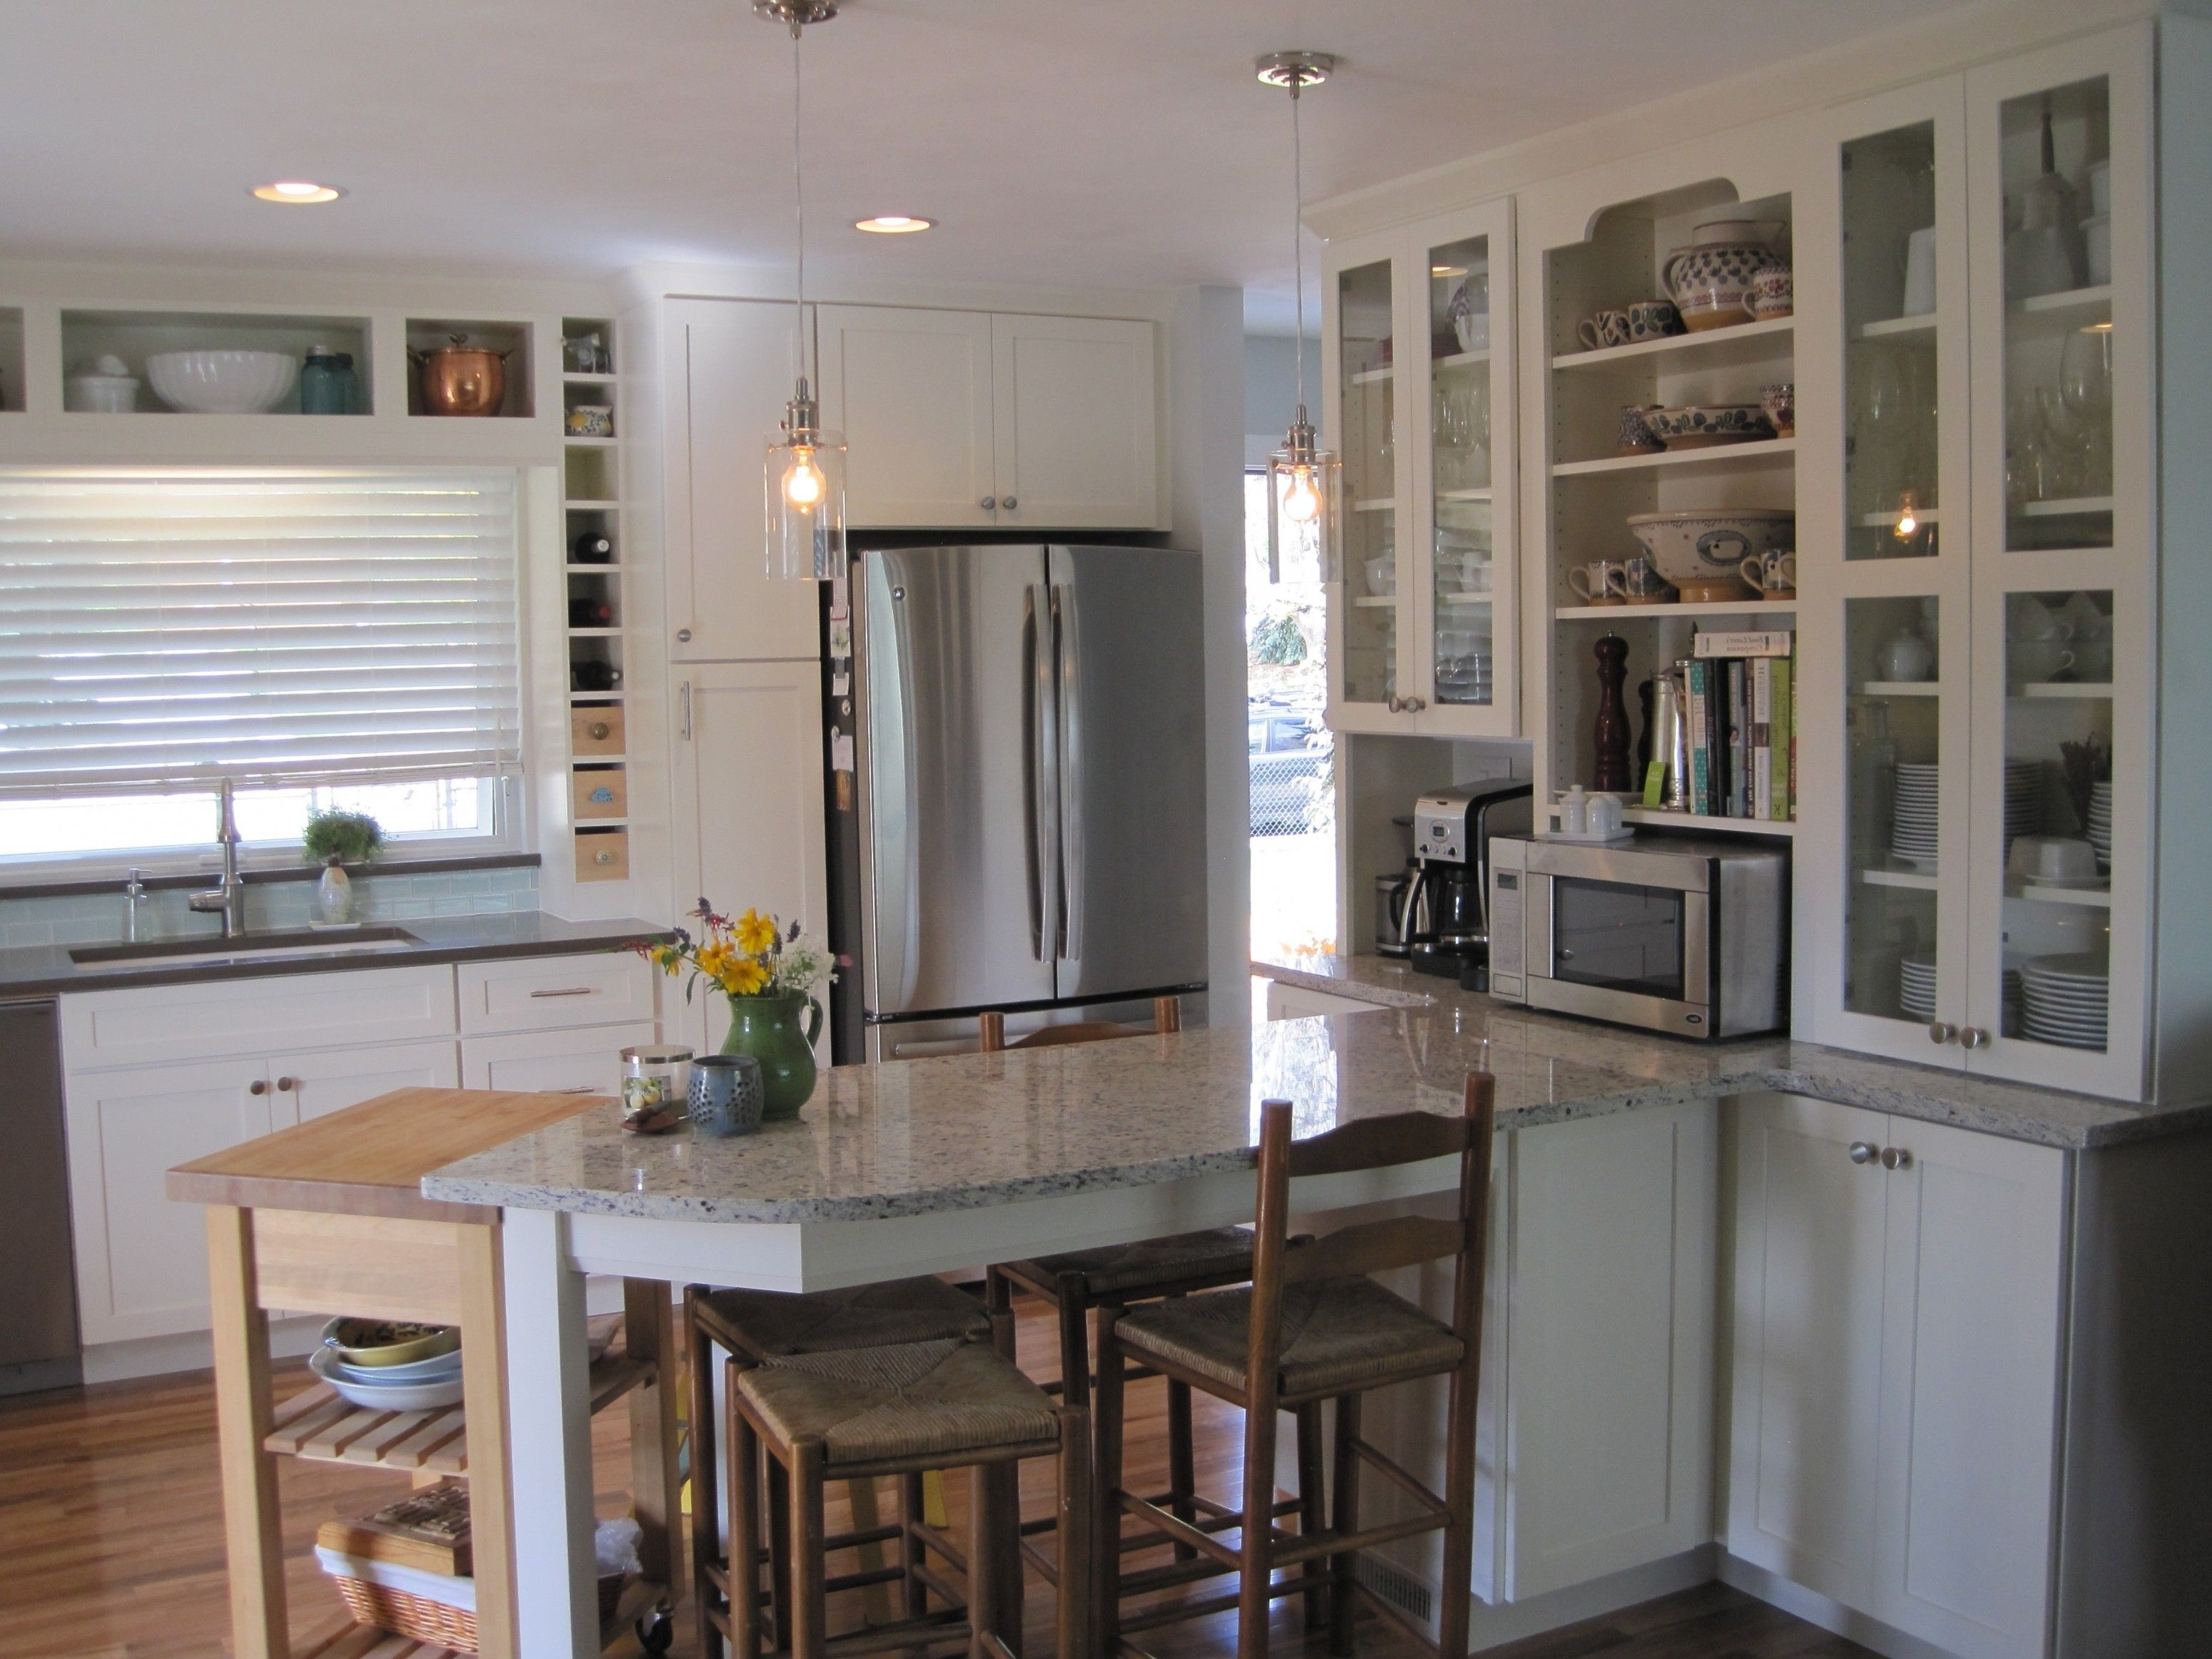 Image Result For Kitchen Peninsula With Seating On Both Sides Kitchen Cabinetry Design Modern Kitchen Design Kitchen Design